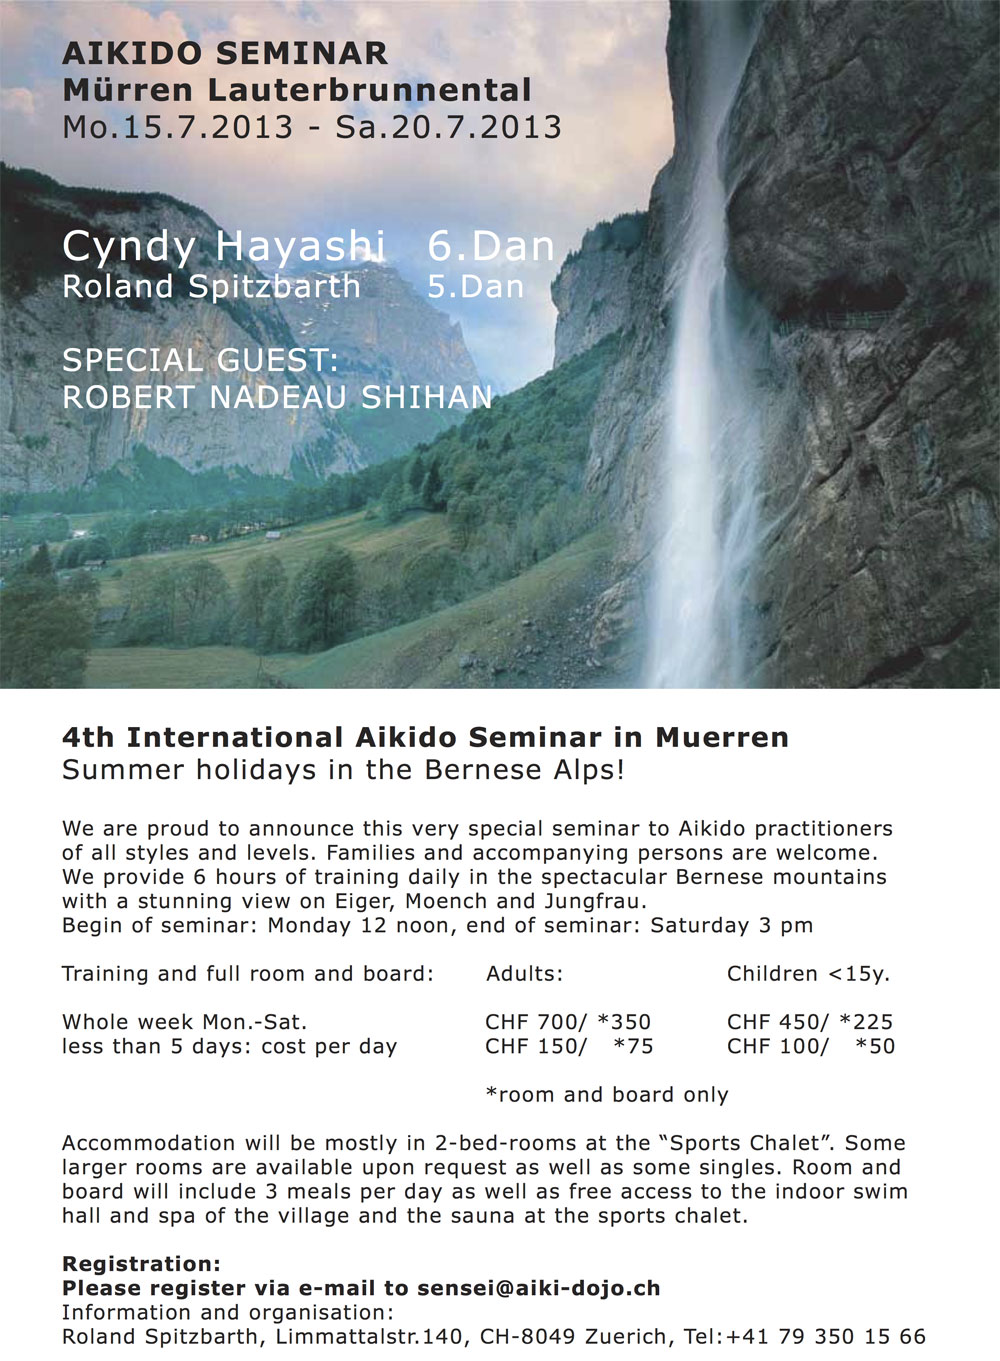 4th International Aikido Seminar in Muerren Summer holidays in the Bernese Alps! We are proud to announce this very special seminar to Aikido practitioners of all styles and levels. Families and accompanying persons are welcome. We provide 6 hours of training daily in the spectacular Bernese mountains with a stunning view on Eiger, Moench and Jungfrau. Begin of seminar: Monday 12 noon, end of seminar: Saturday 3 pm Training and full room and board: Whole week Mon.-Sat. less than 5 days: cost per day Adults: CHF 700/ *350 CHF 150/ *75 Children